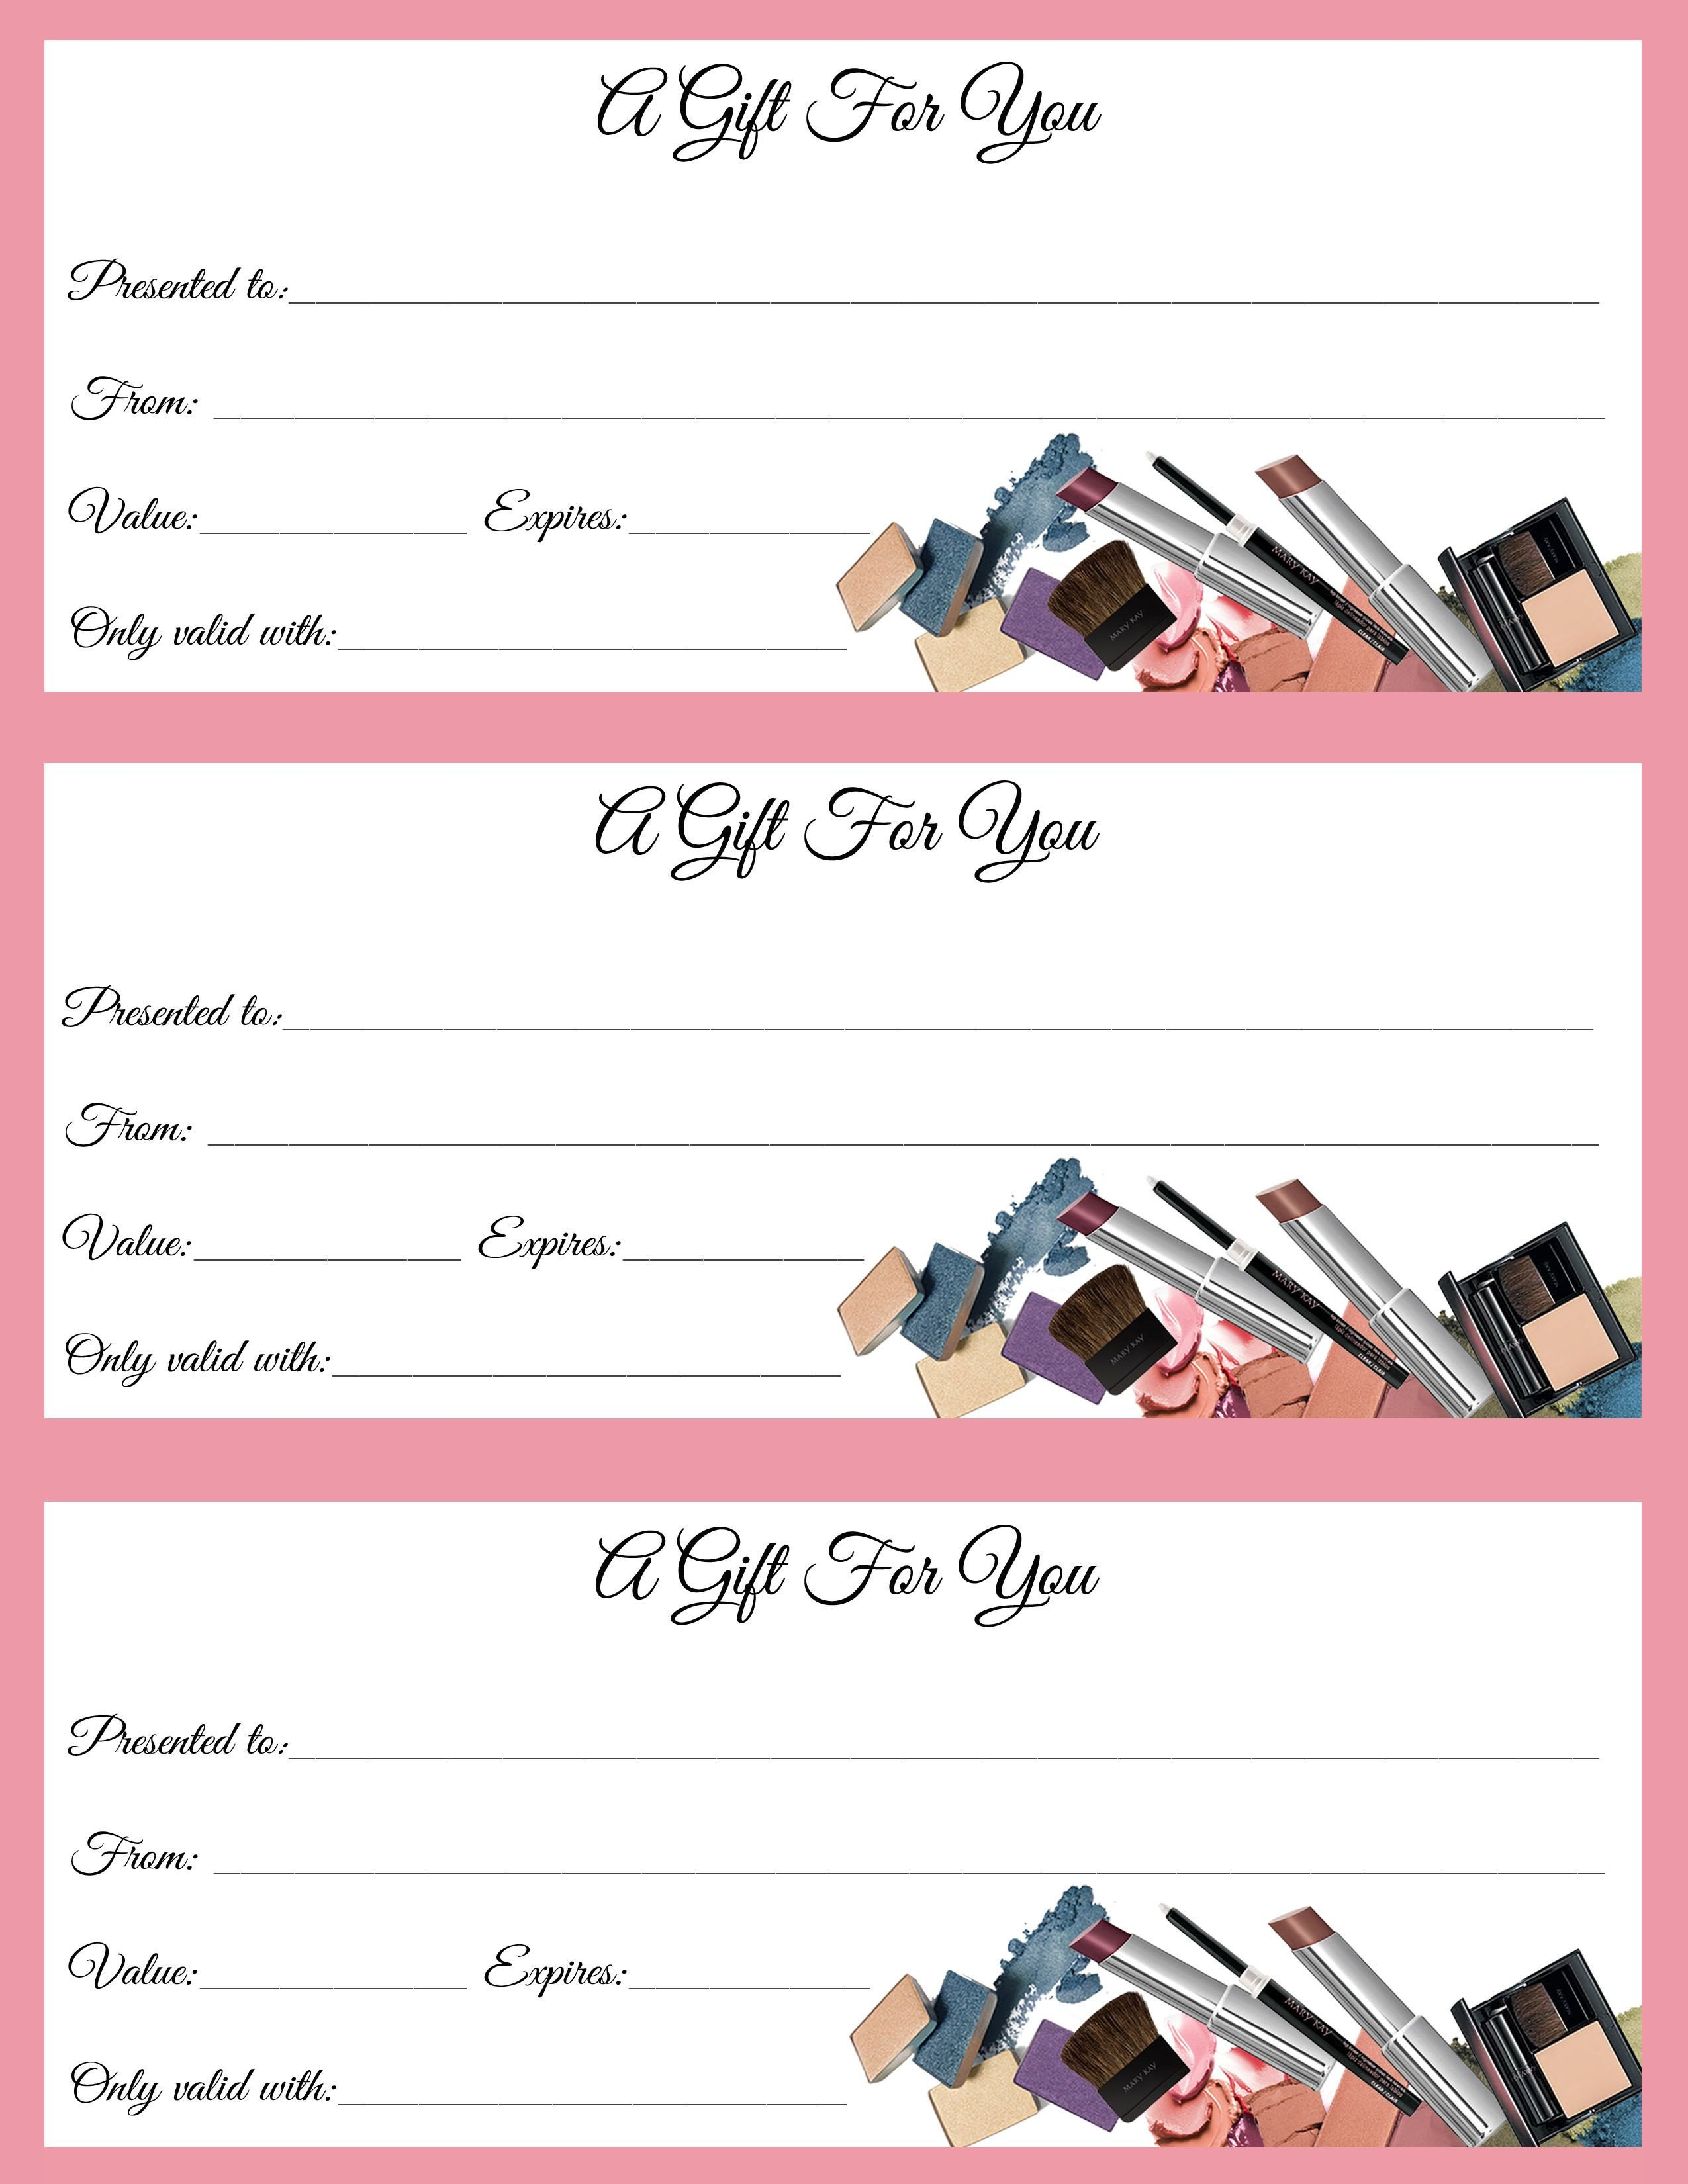 Mary Kay Gift Certificates Pdf Gift Certificates Just In Time for Call or Text to order